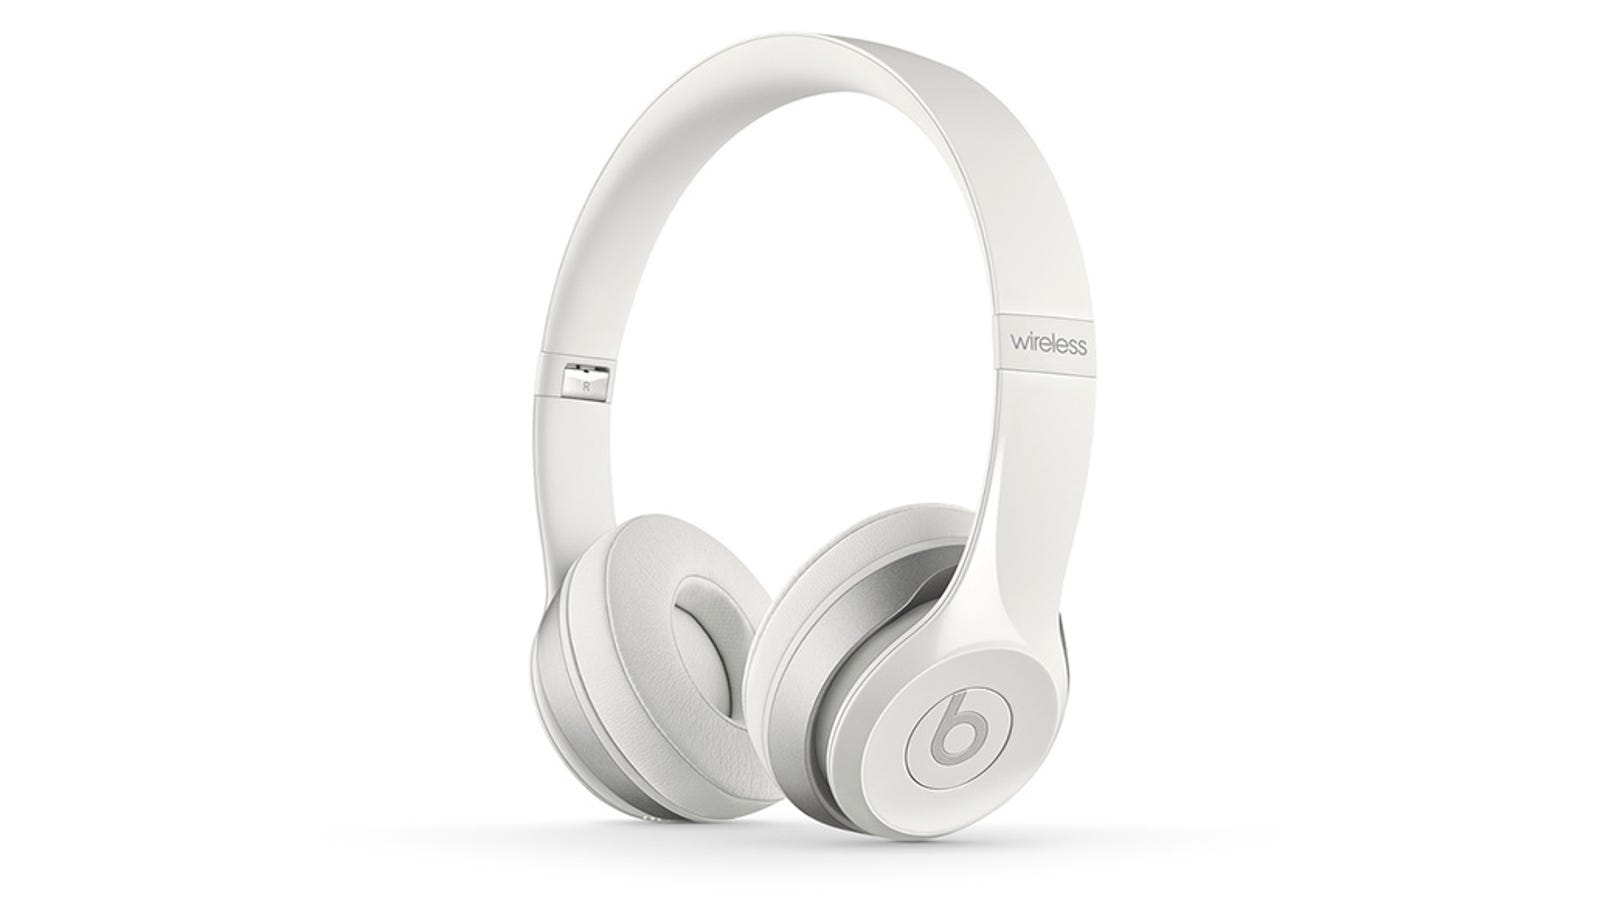 apple earbuds on sale - Beats Now Makes a Wireless Version of Its Wildly Popular Solo2 Cans